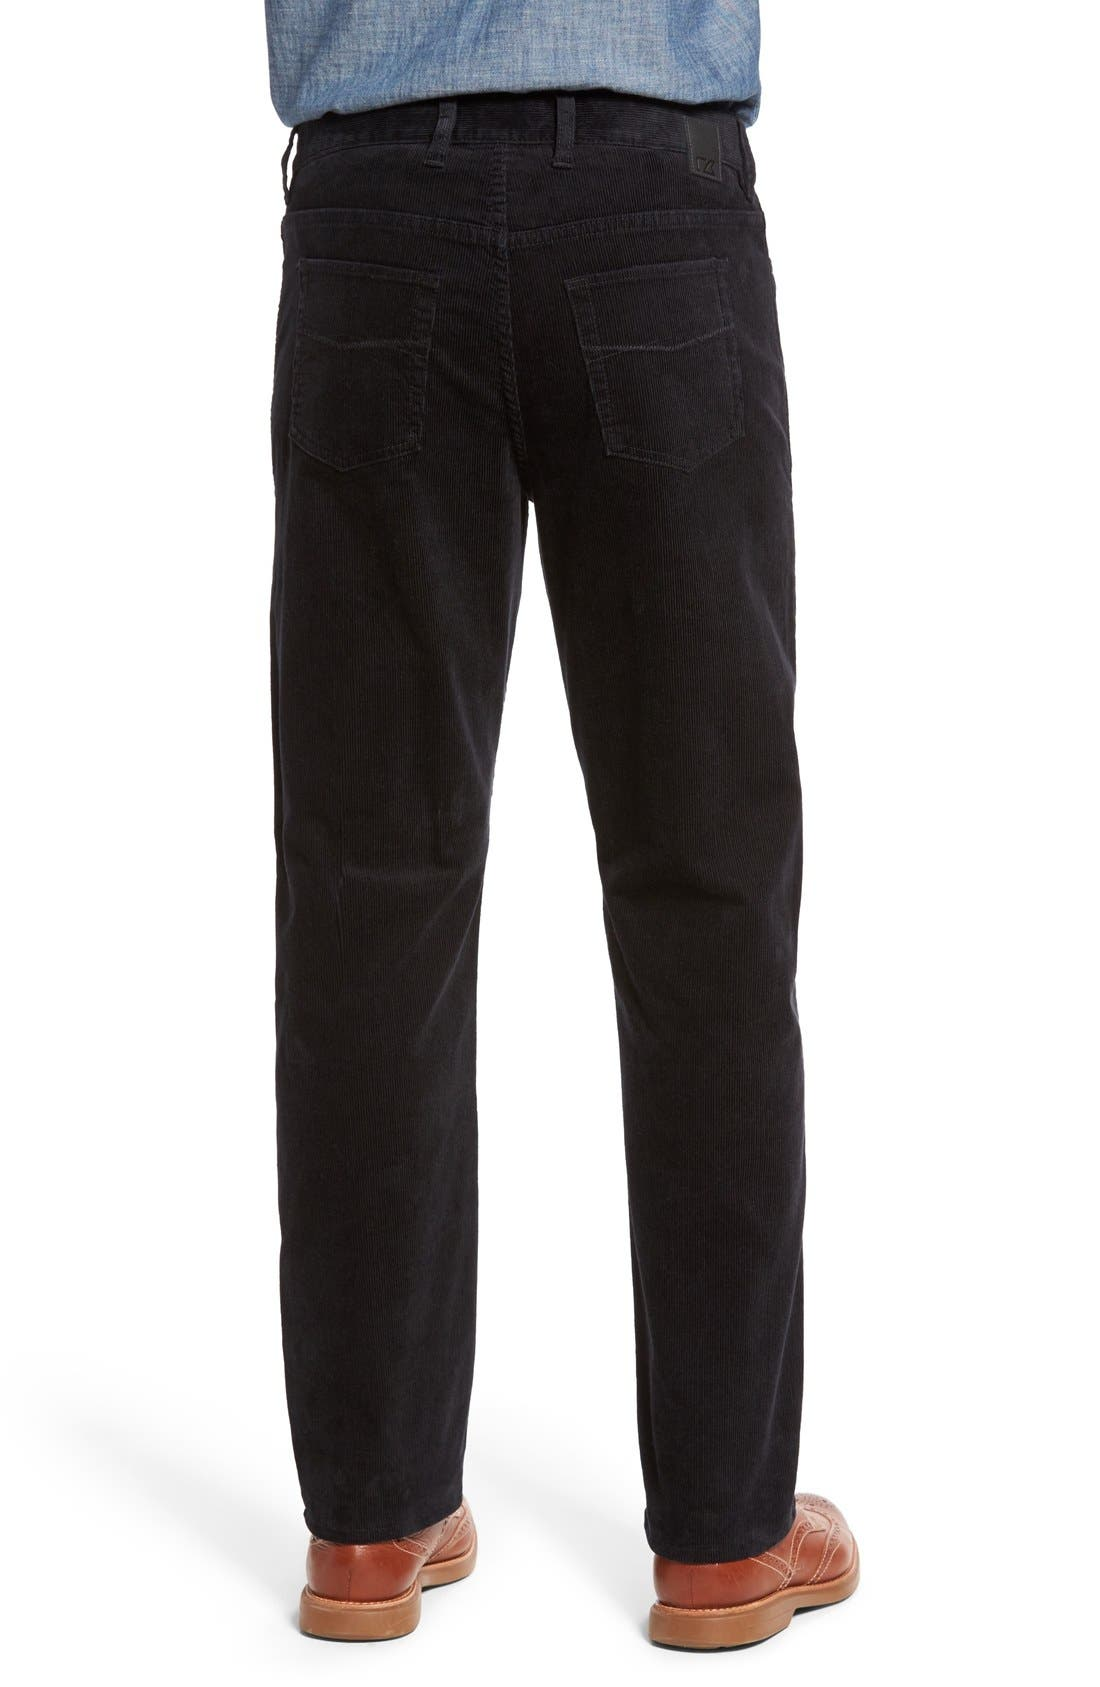 Greenwood Stretch Corduroy Pants,                             Alternate thumbnail 4, color,                             BLACK